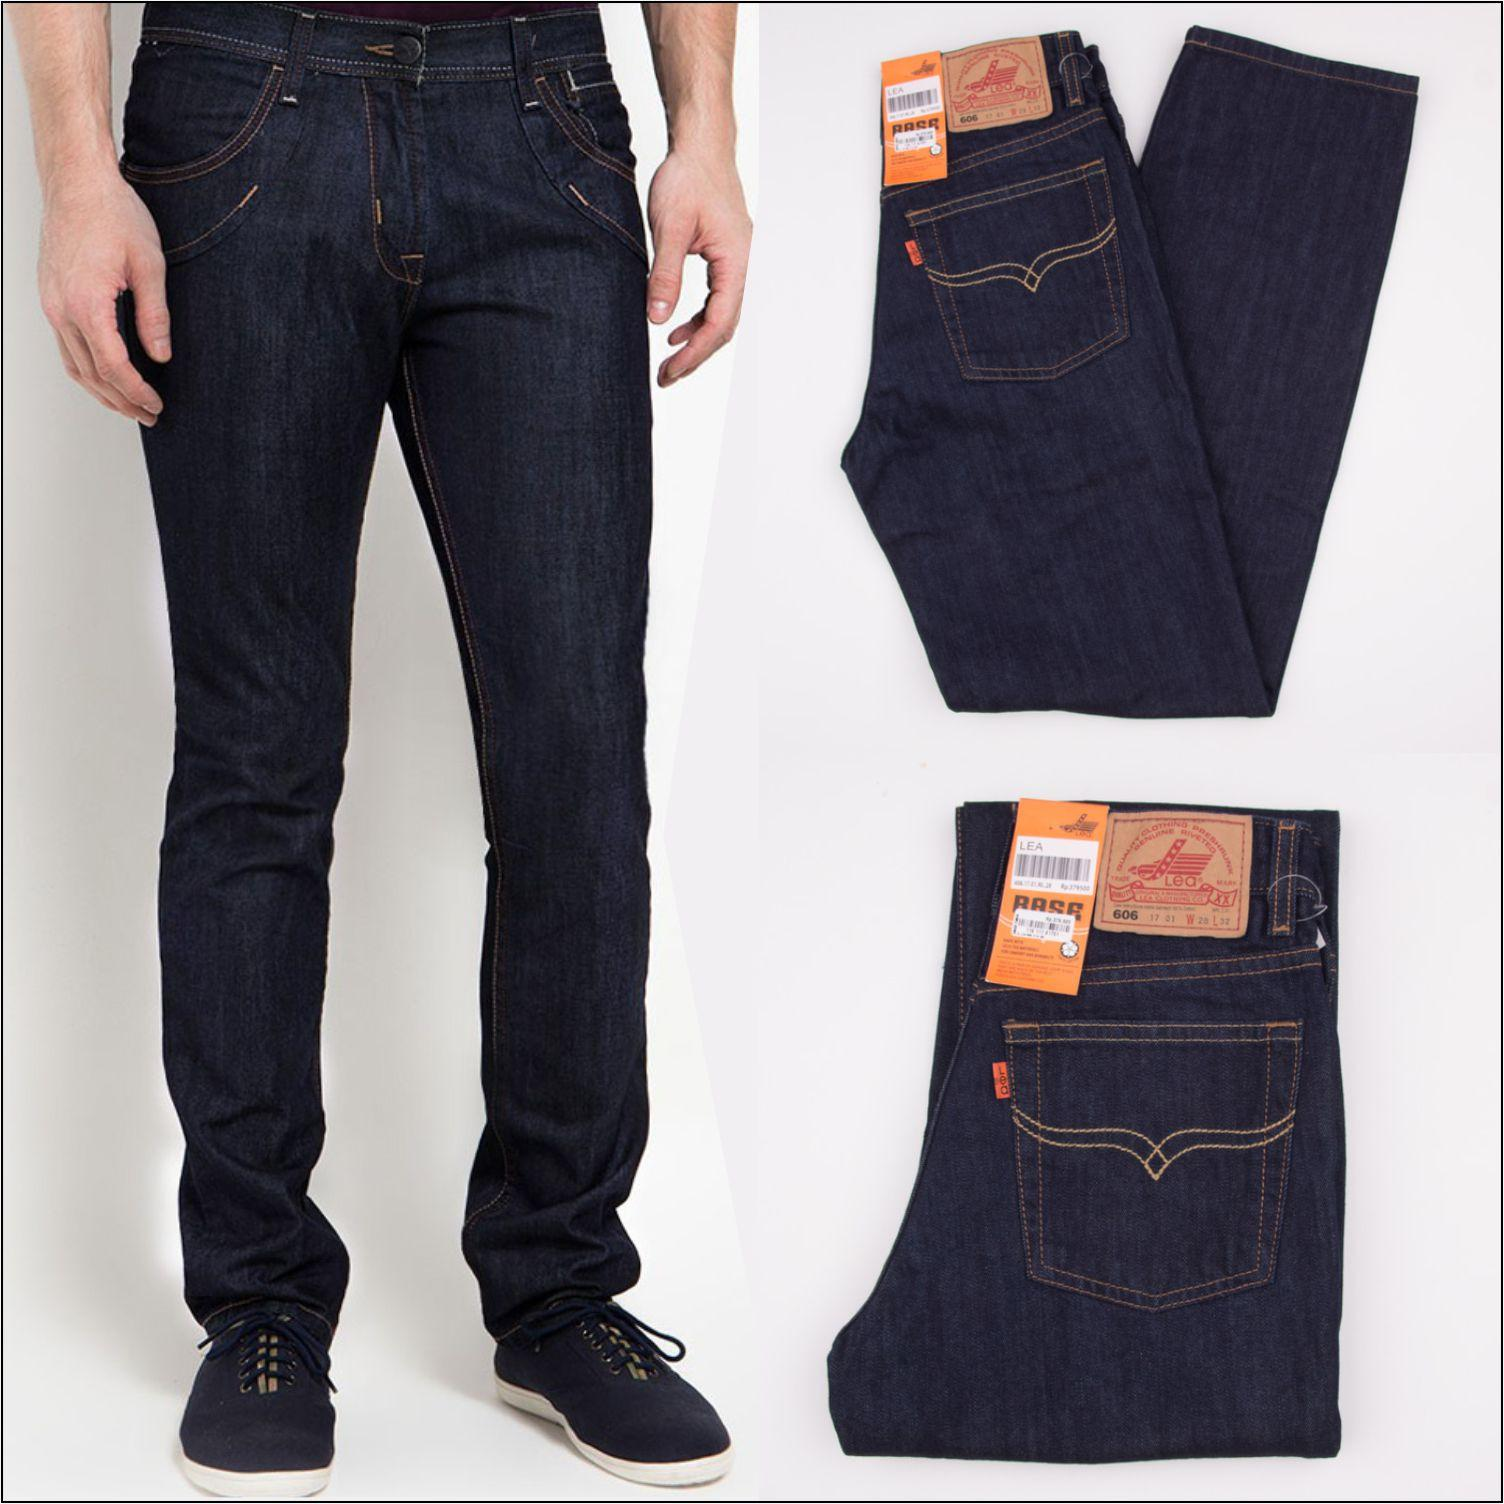 LEA JEANS BRANDED GRADE ORY 100% IMPORT QUALITY